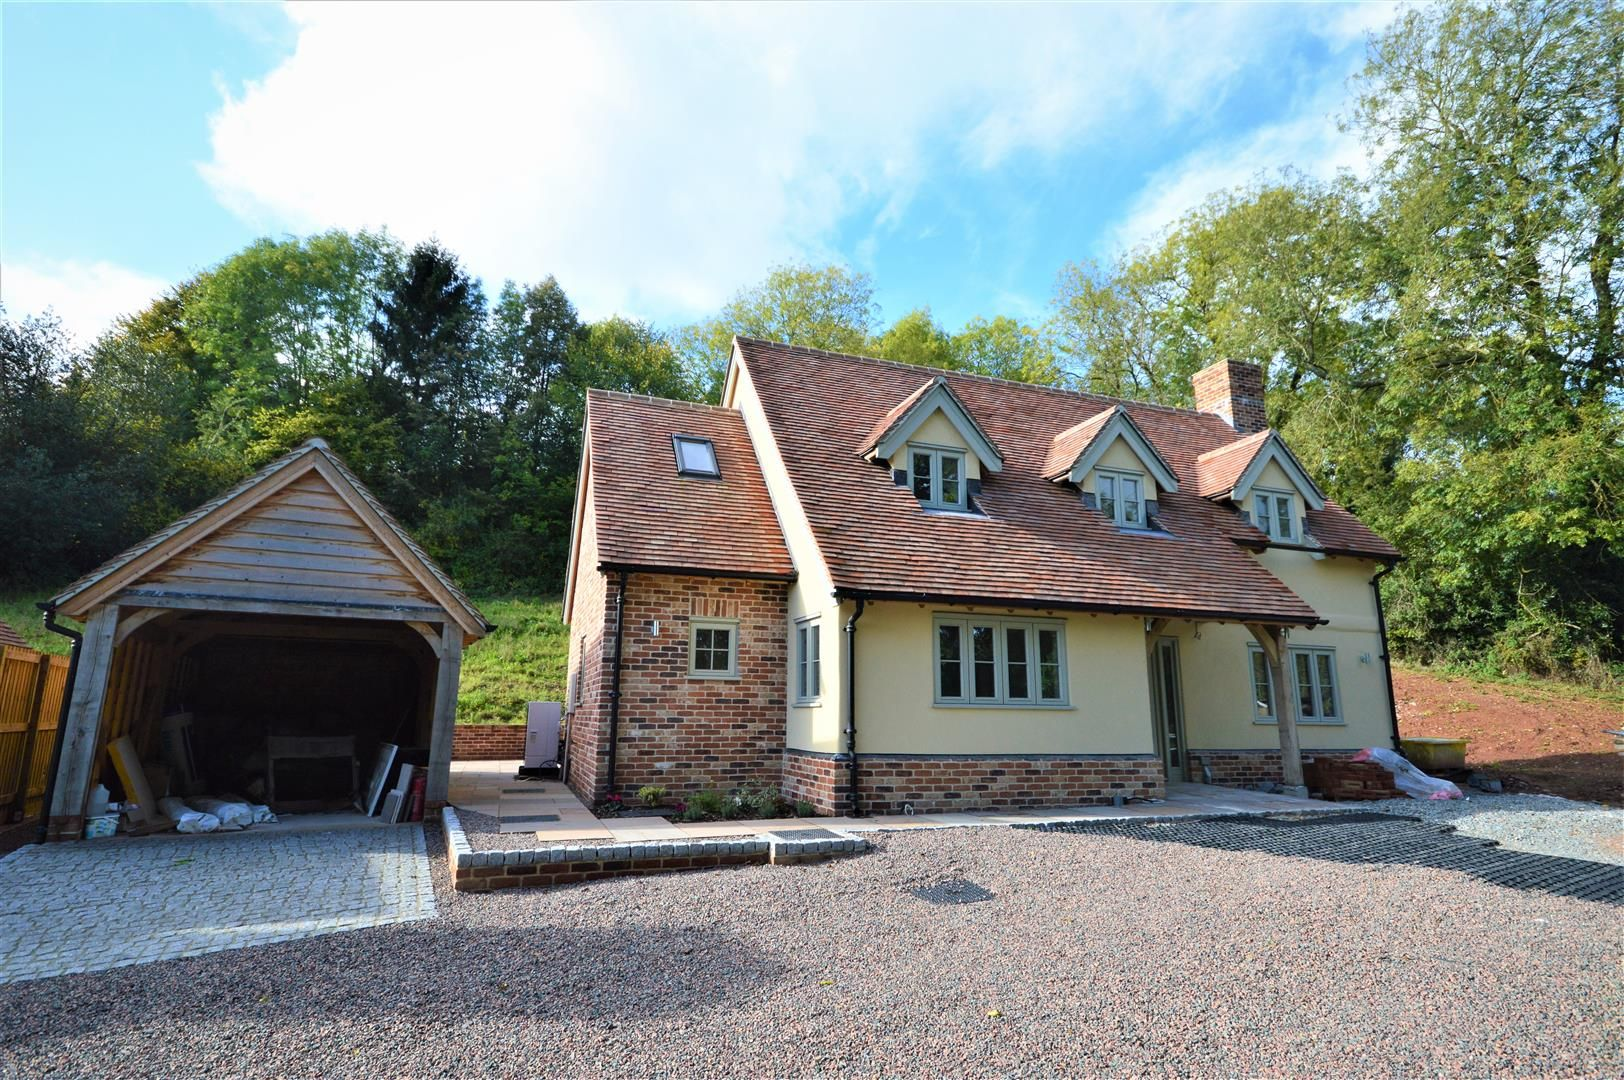 3 bed house for sale in Dilwyn, HR4